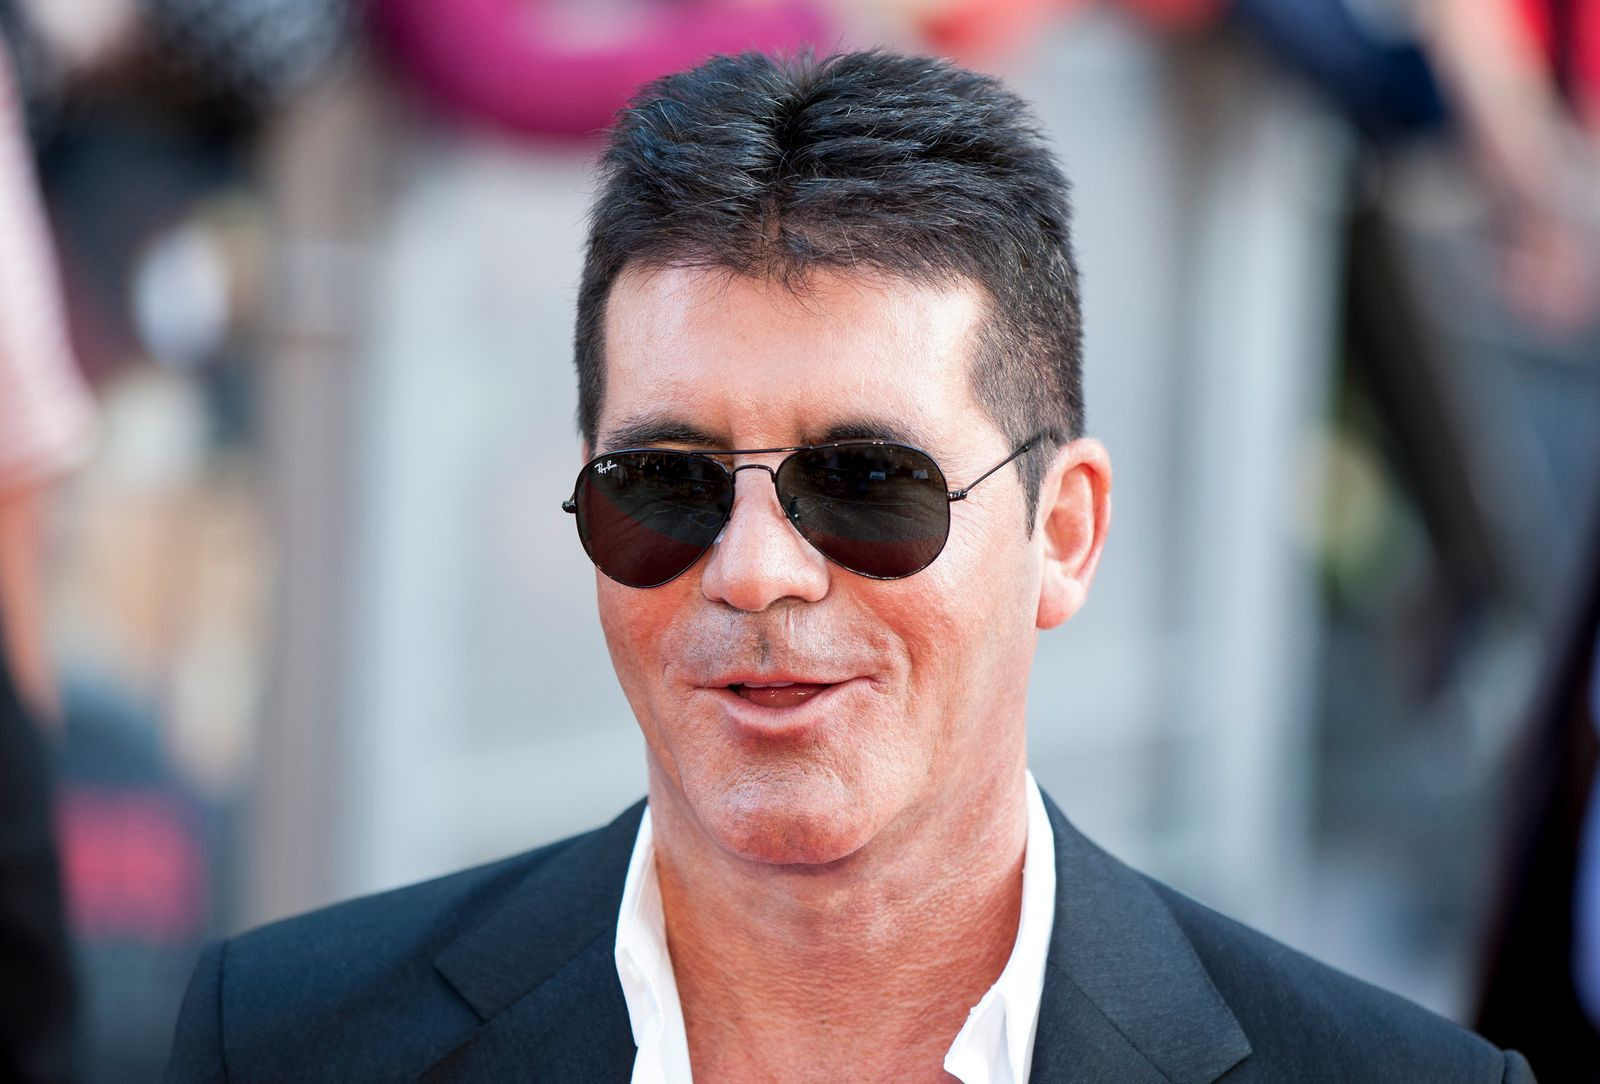 AGT Judge Simon Cowell. | Photo: Getty Images